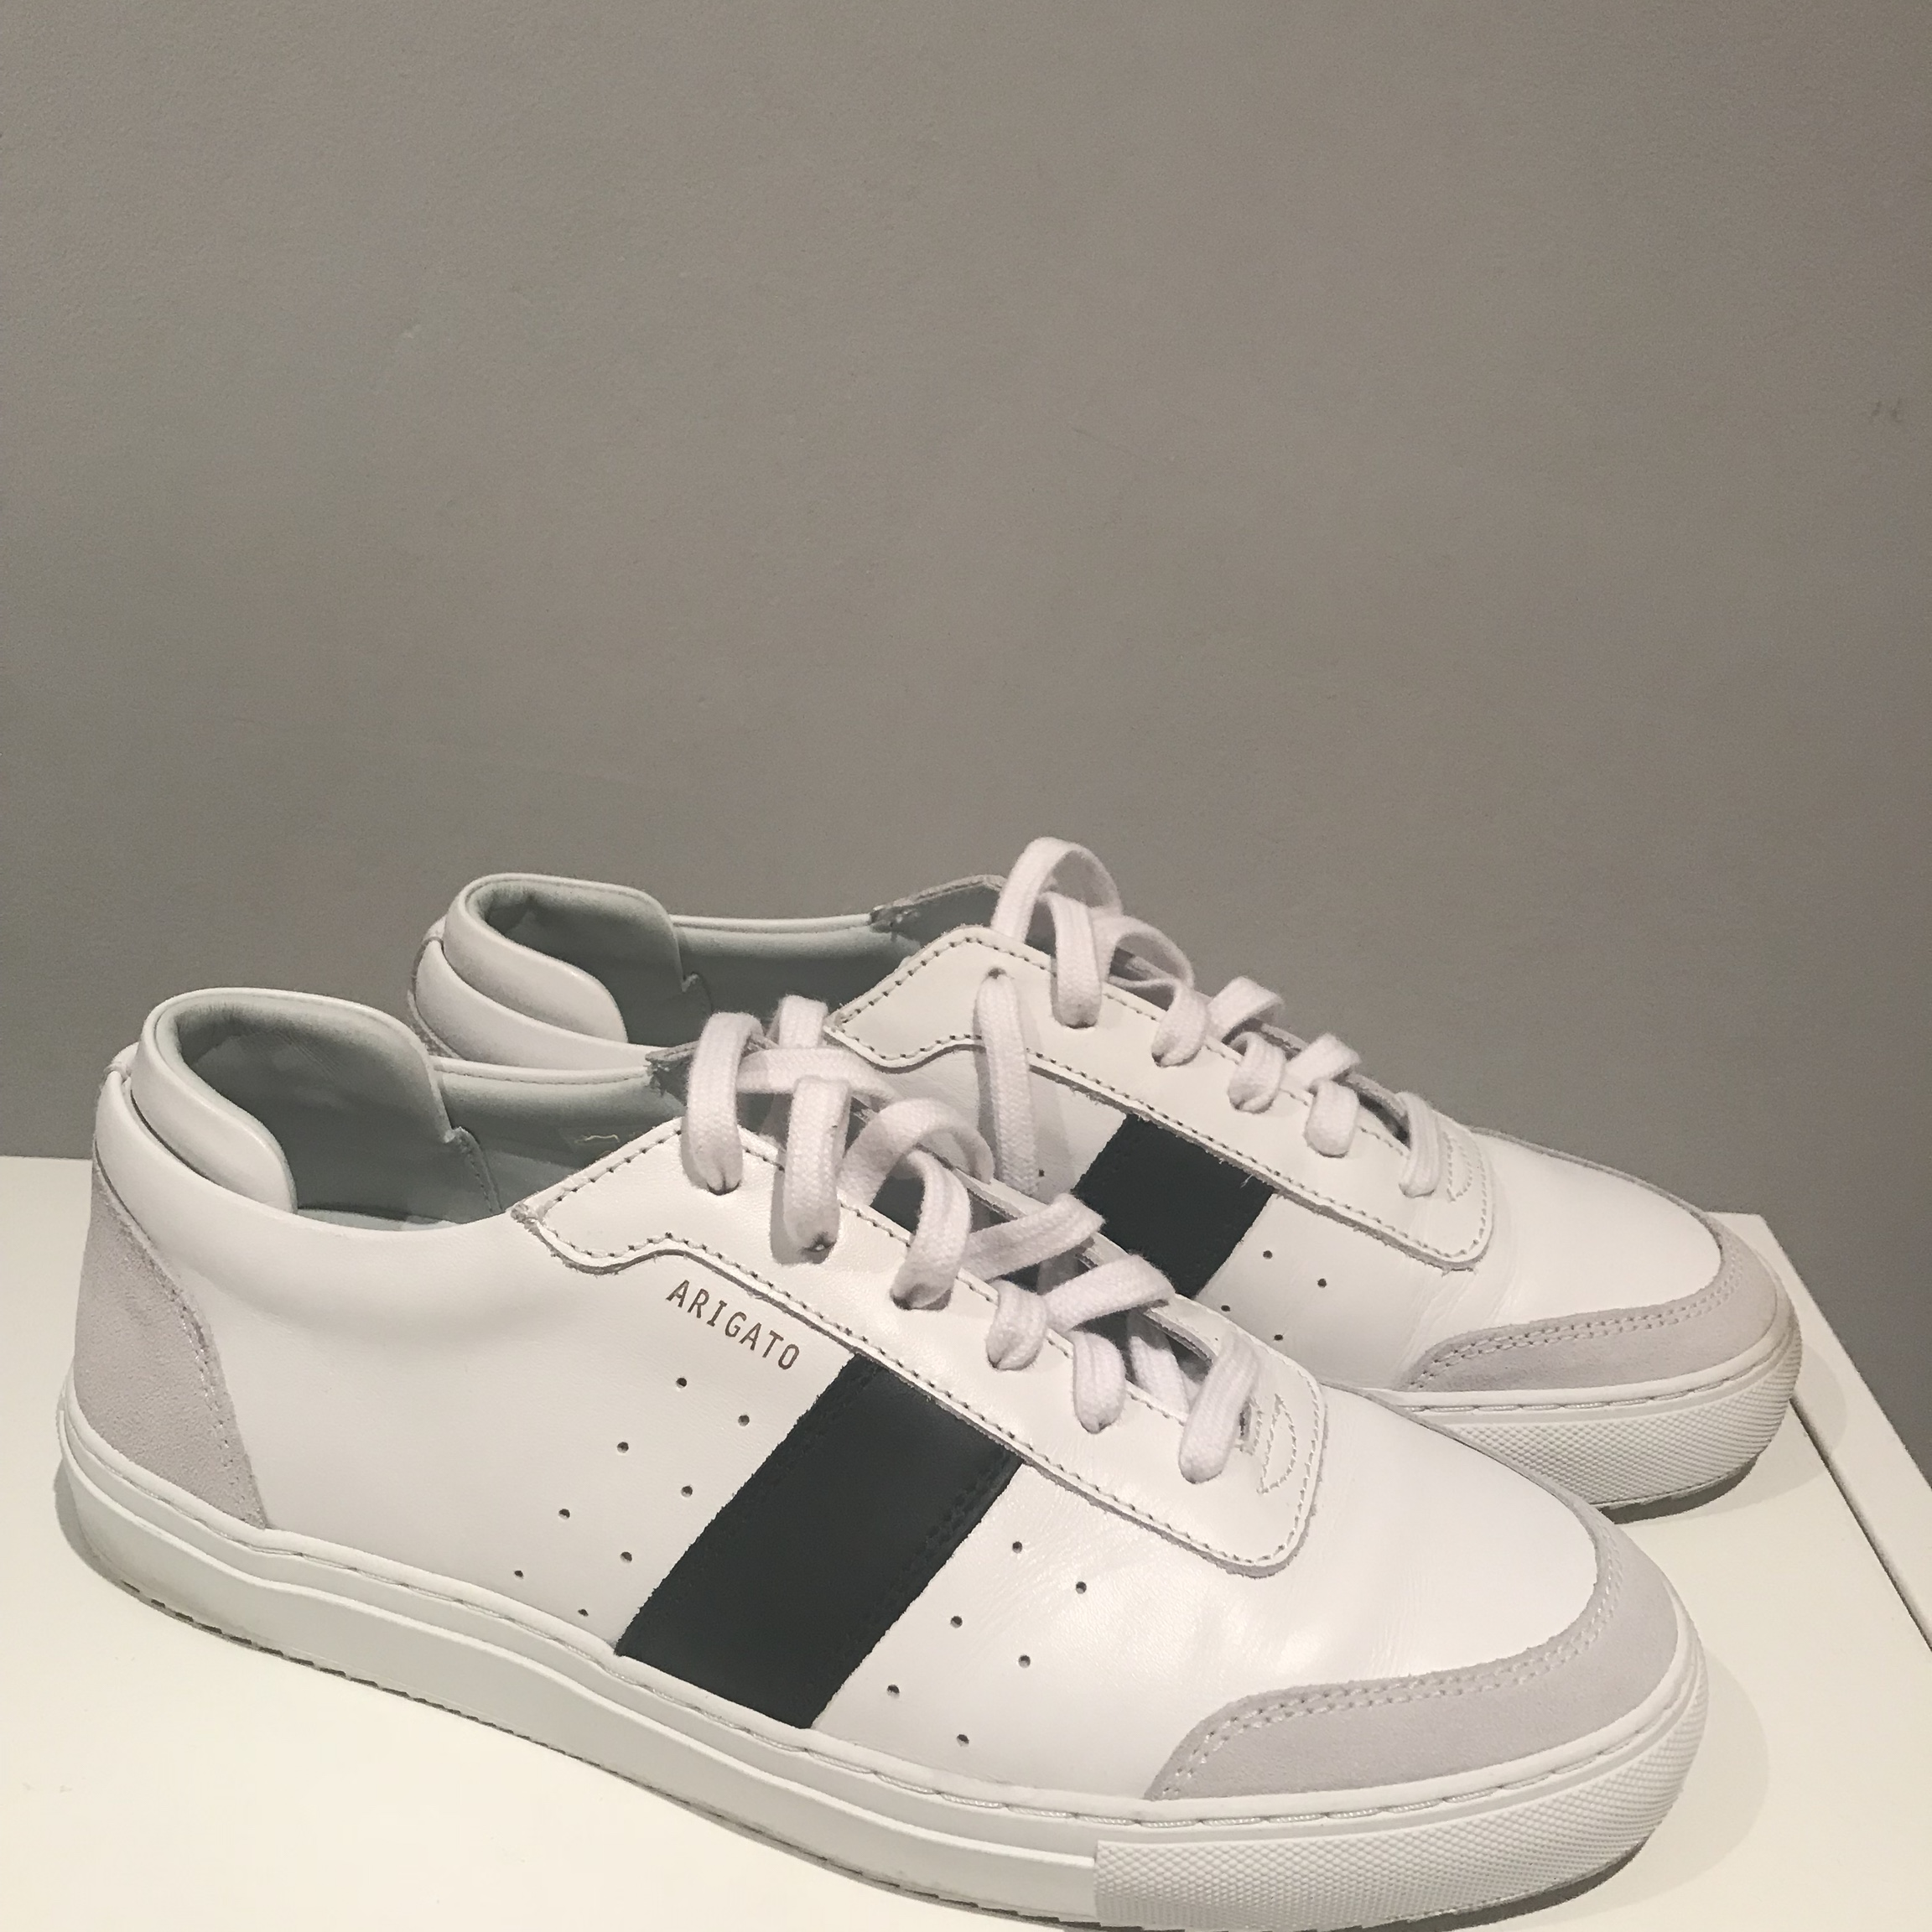 Like new Axel Arigato Dunk suede